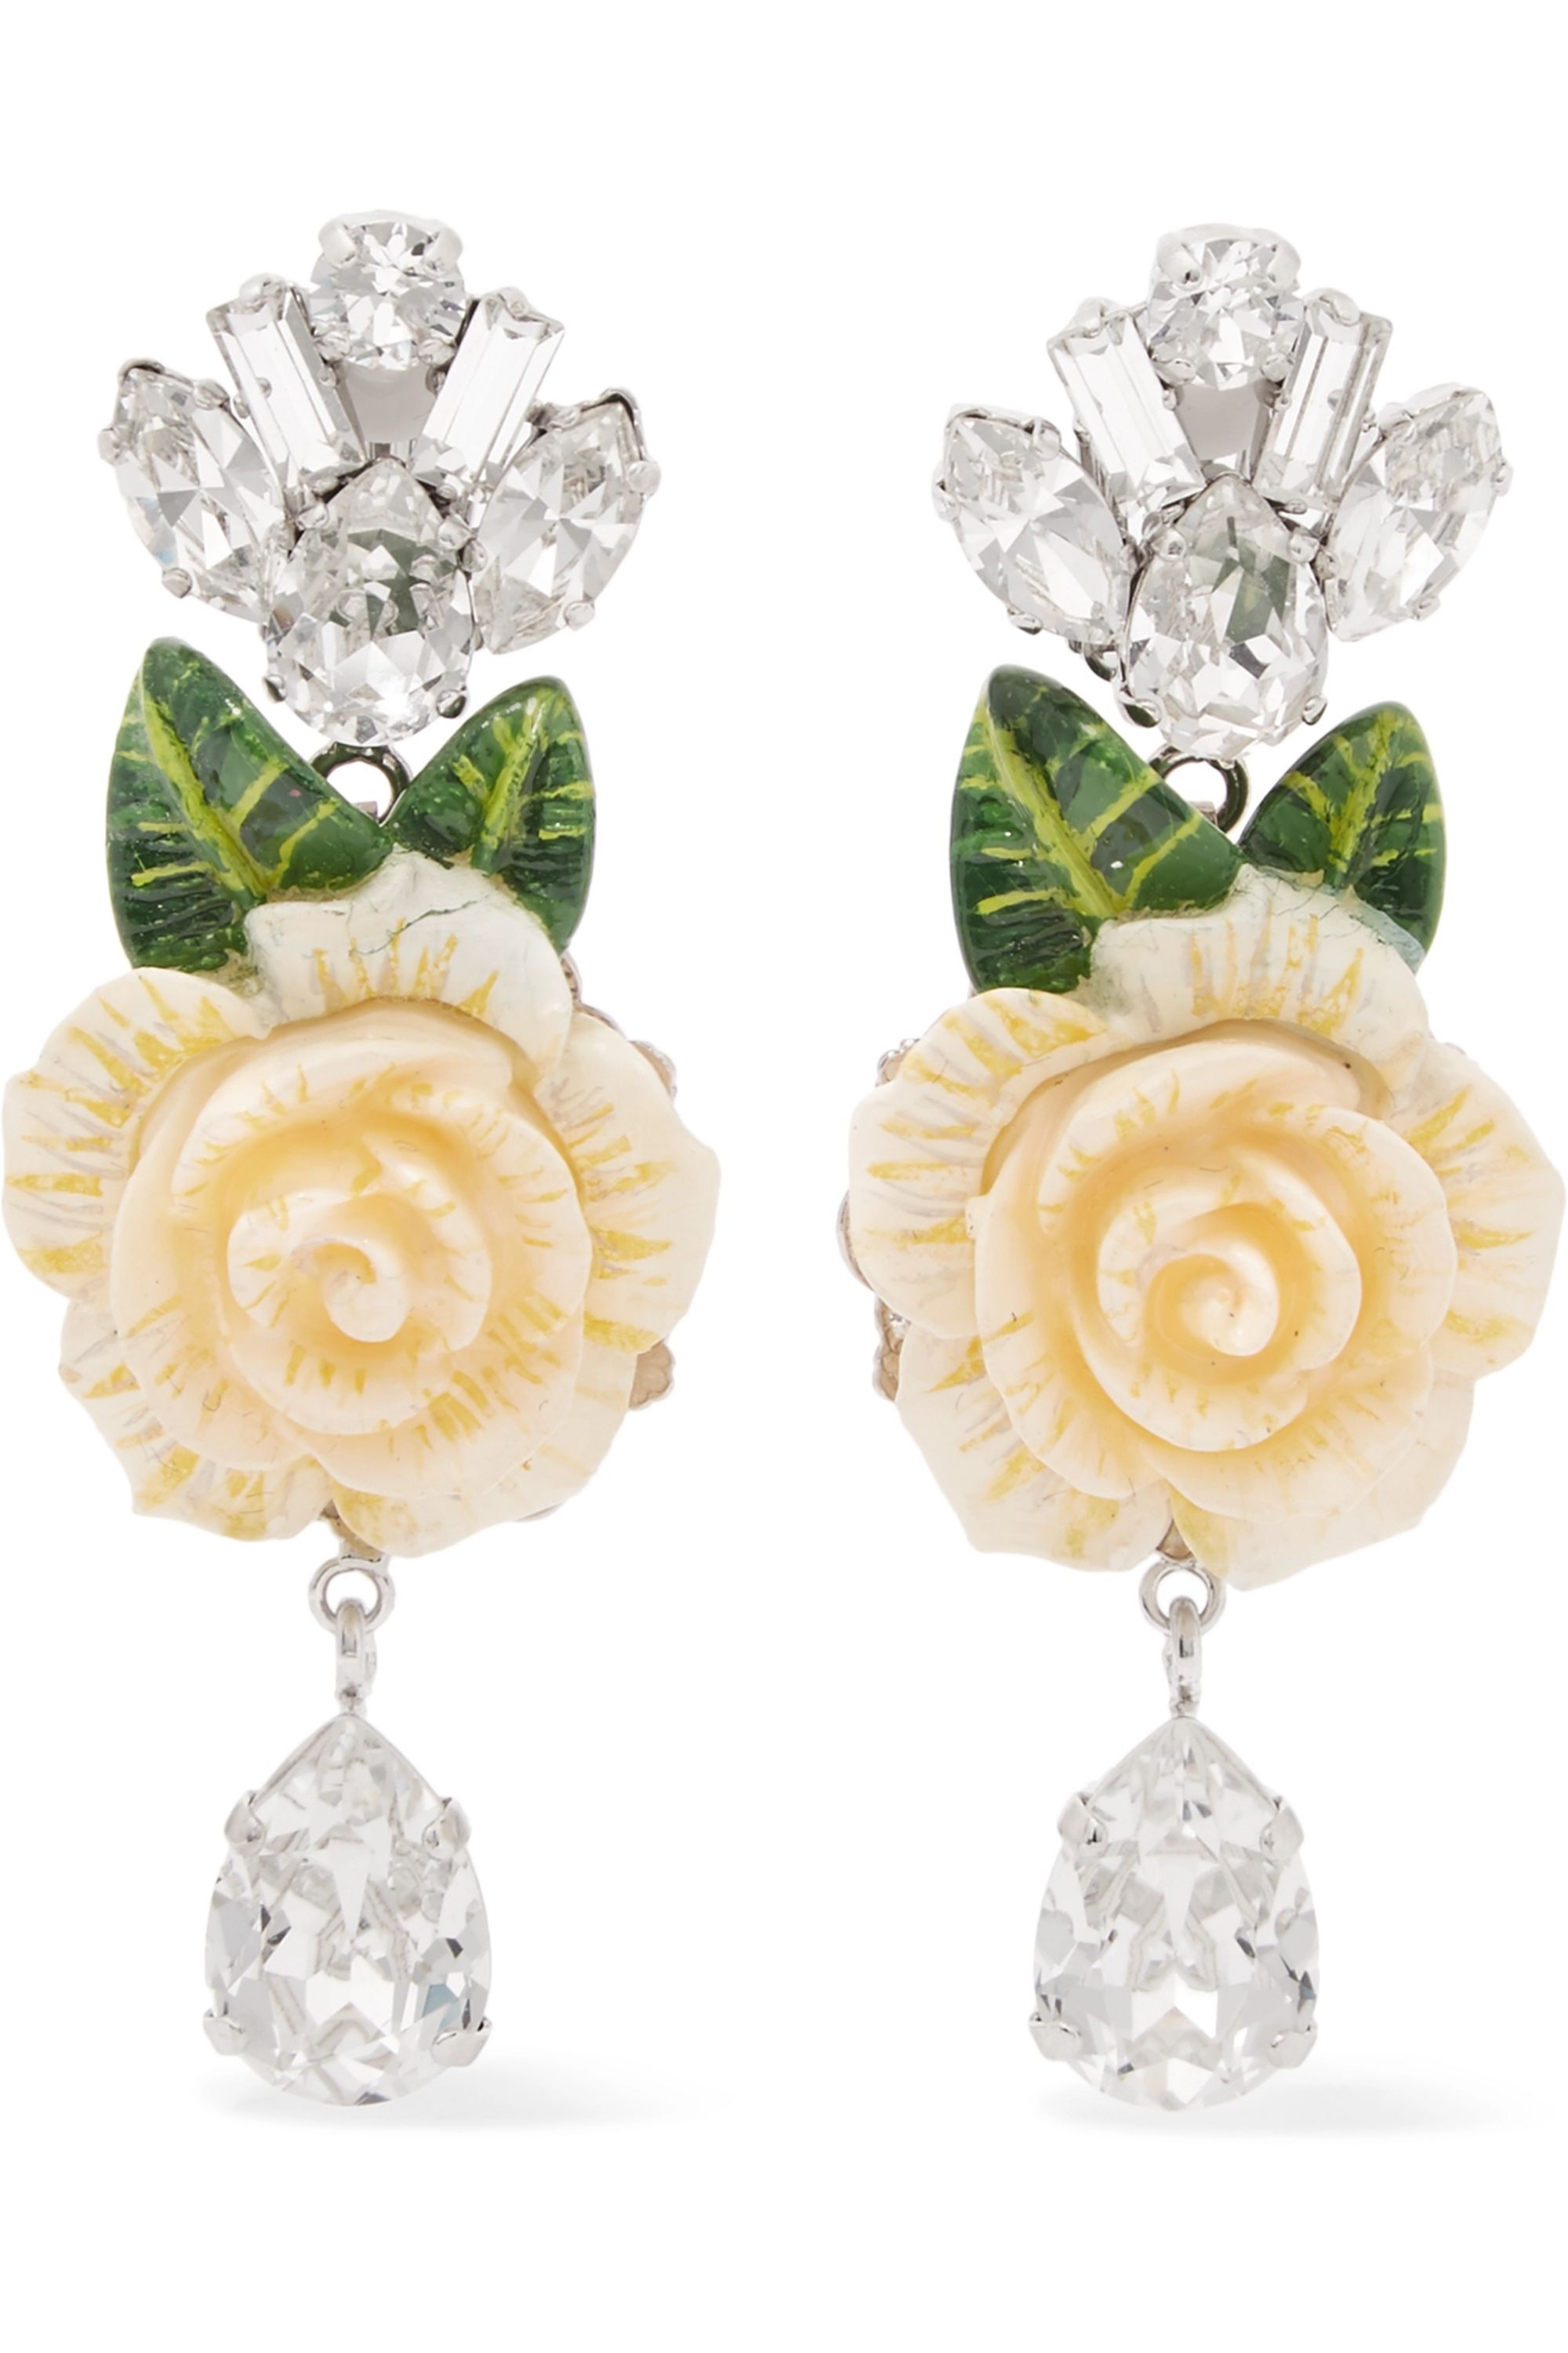 Dolce & Gabbana Silver-plated, enamel and crystal clip earrings